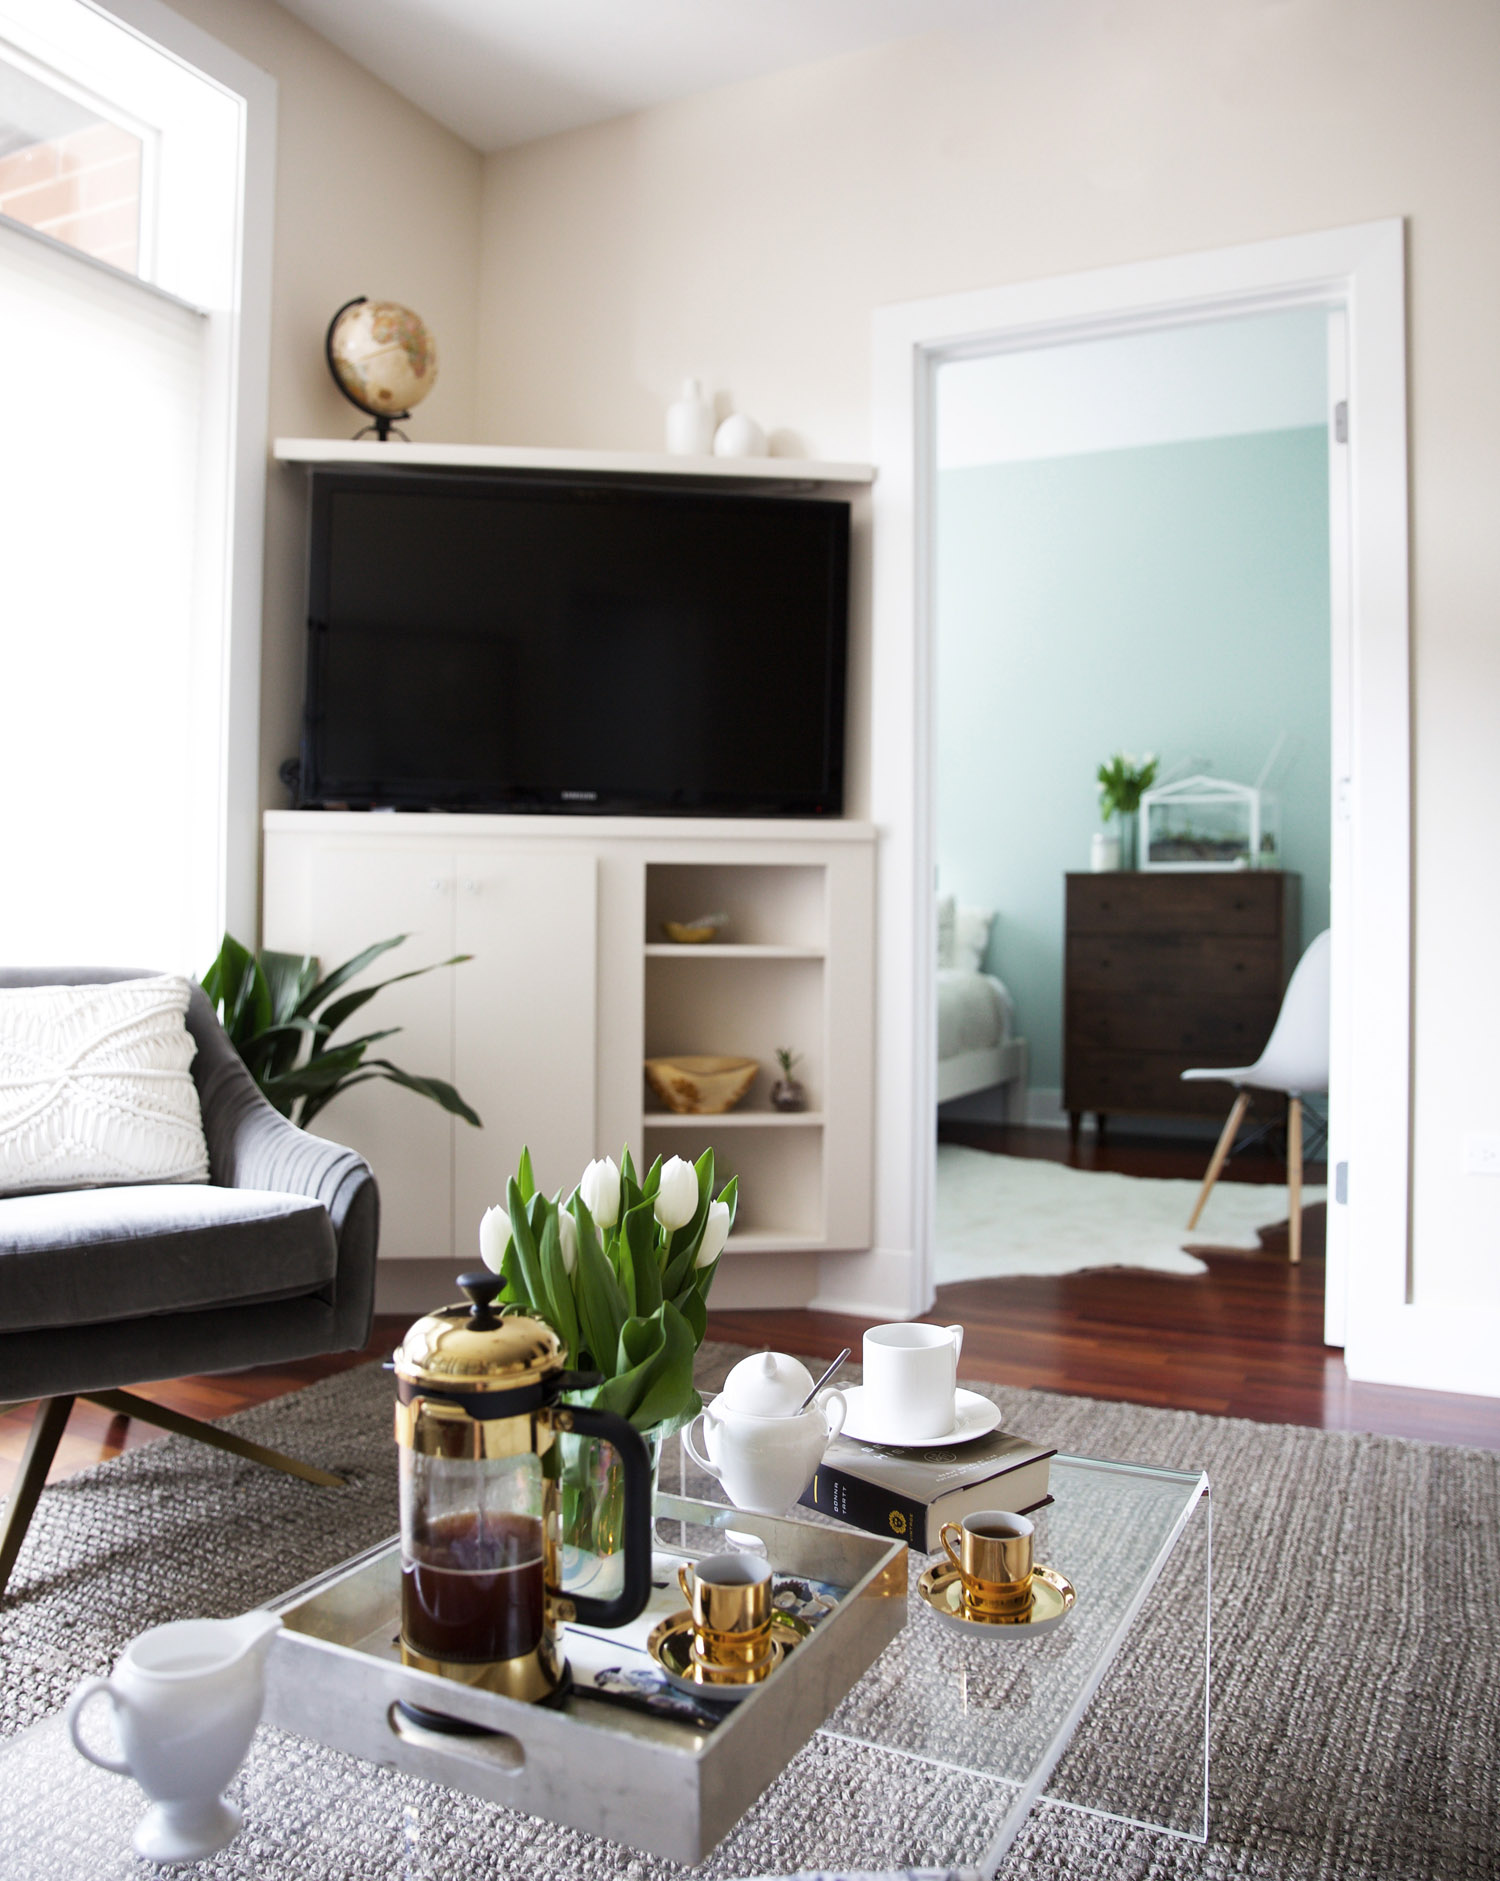 Appartement Interieur Luxe Luxe Minimalism In A Small Chicago Apartment Front Main